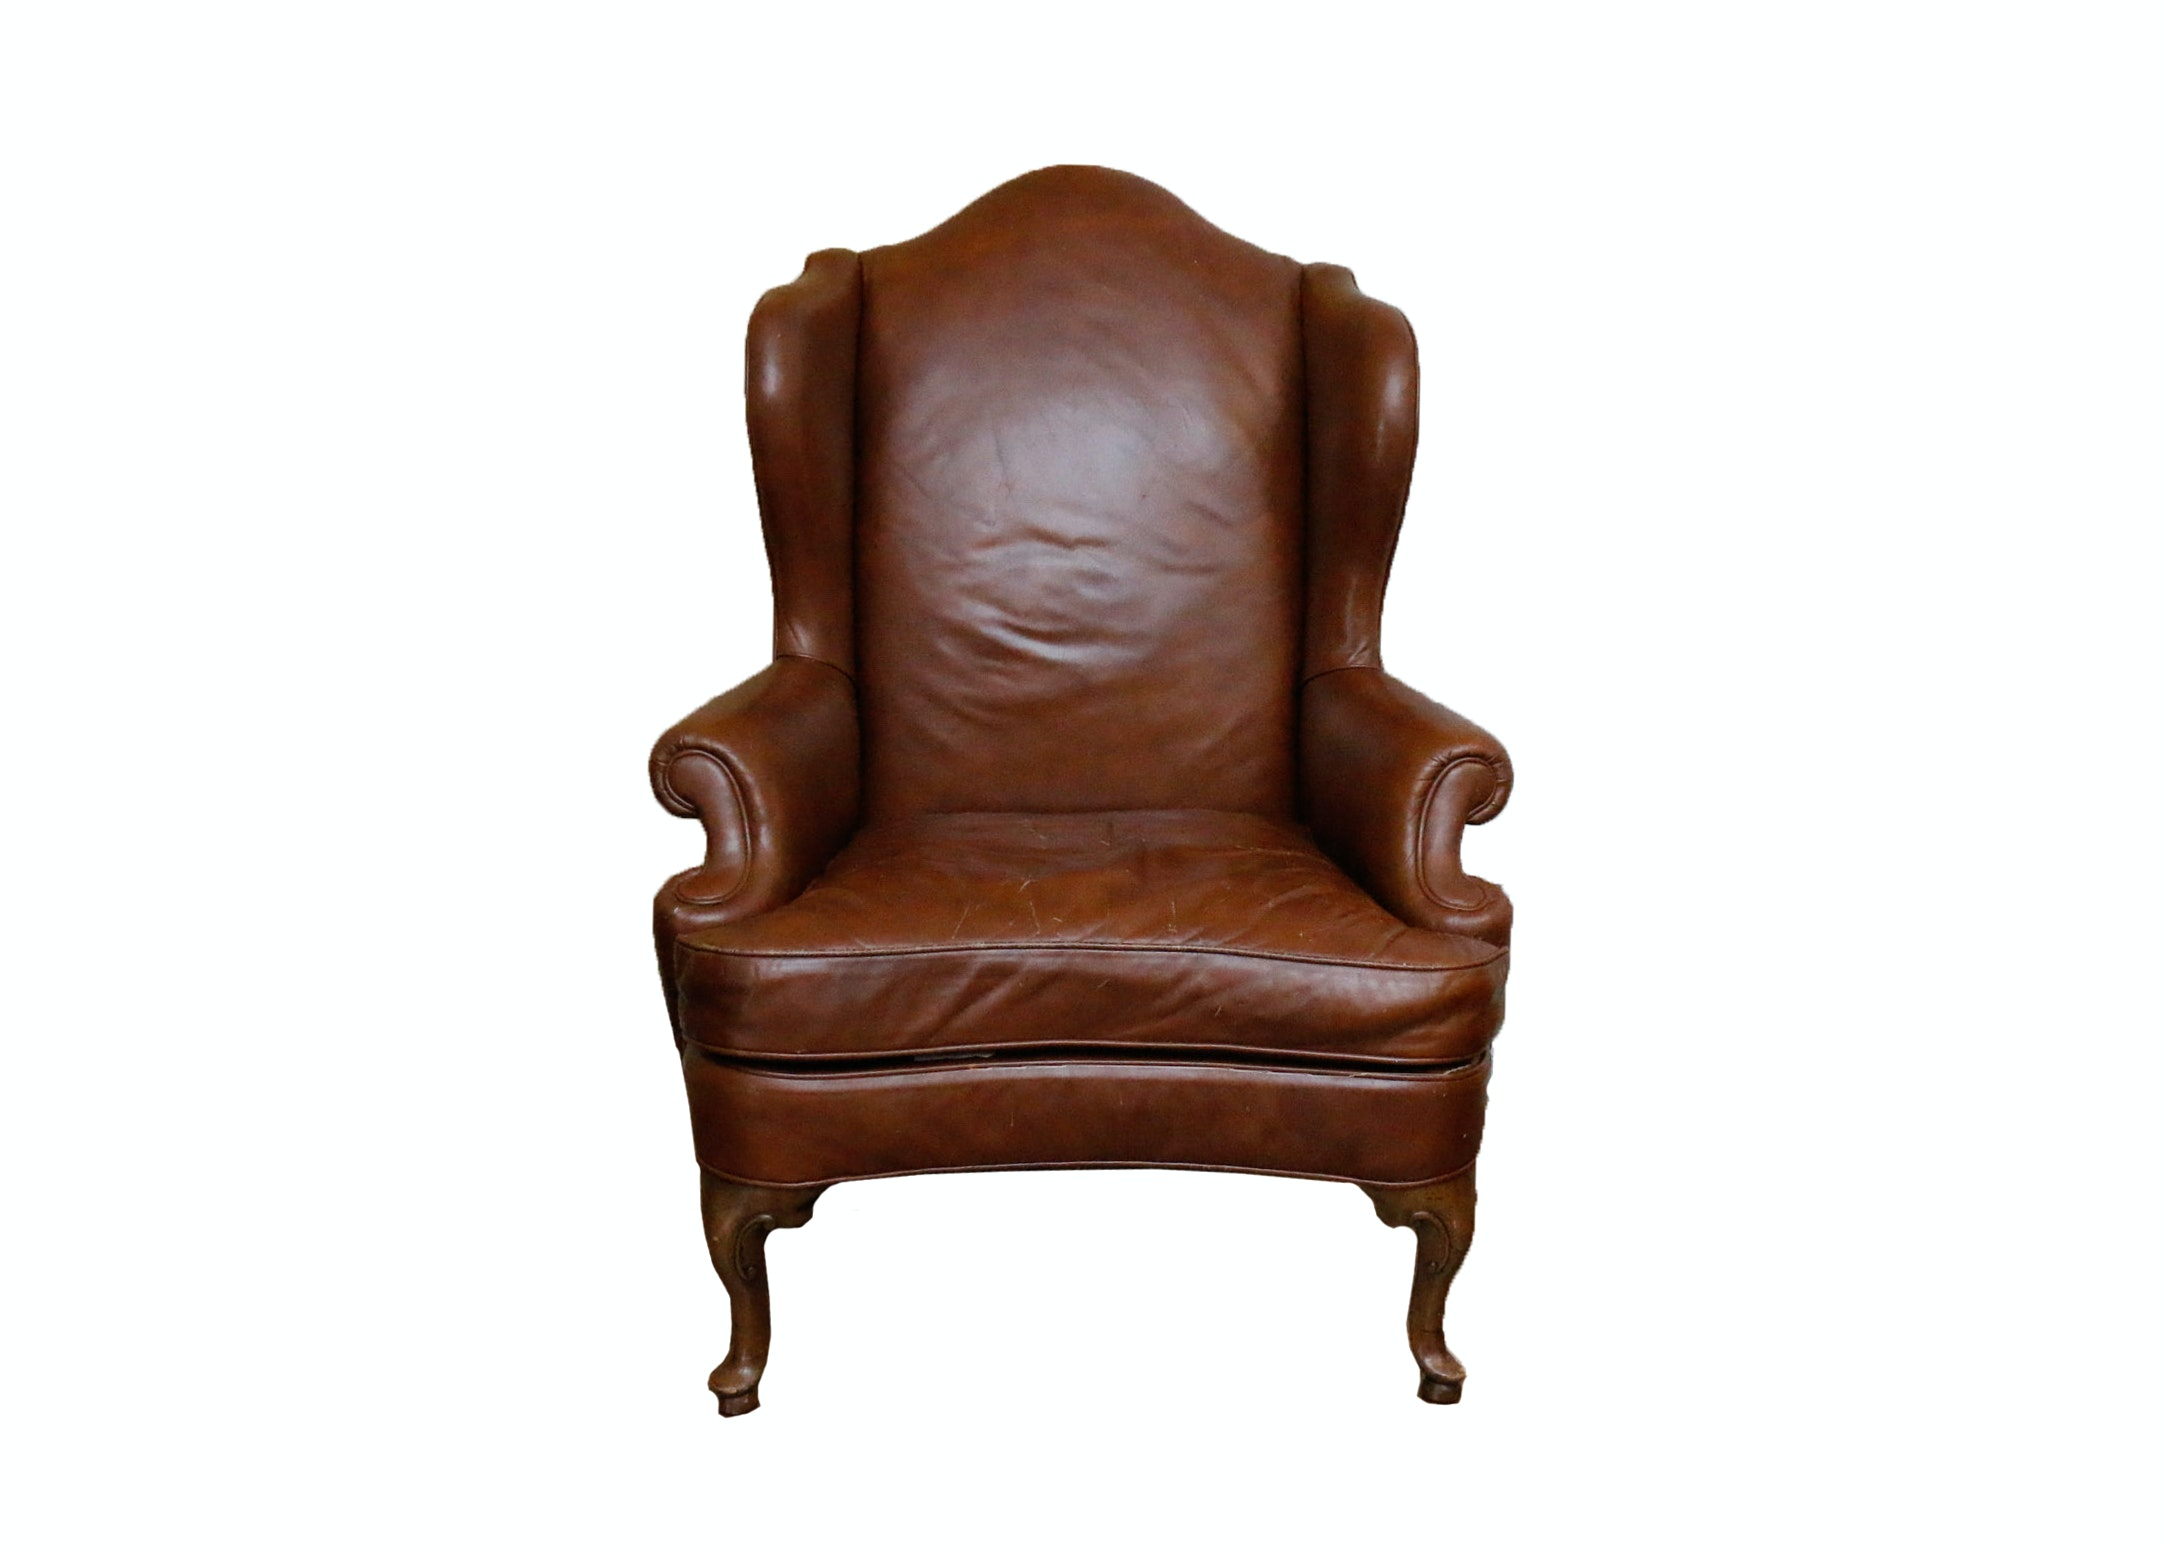 Queen Anne Style Leather Wingback Chair by Drexel Heritage